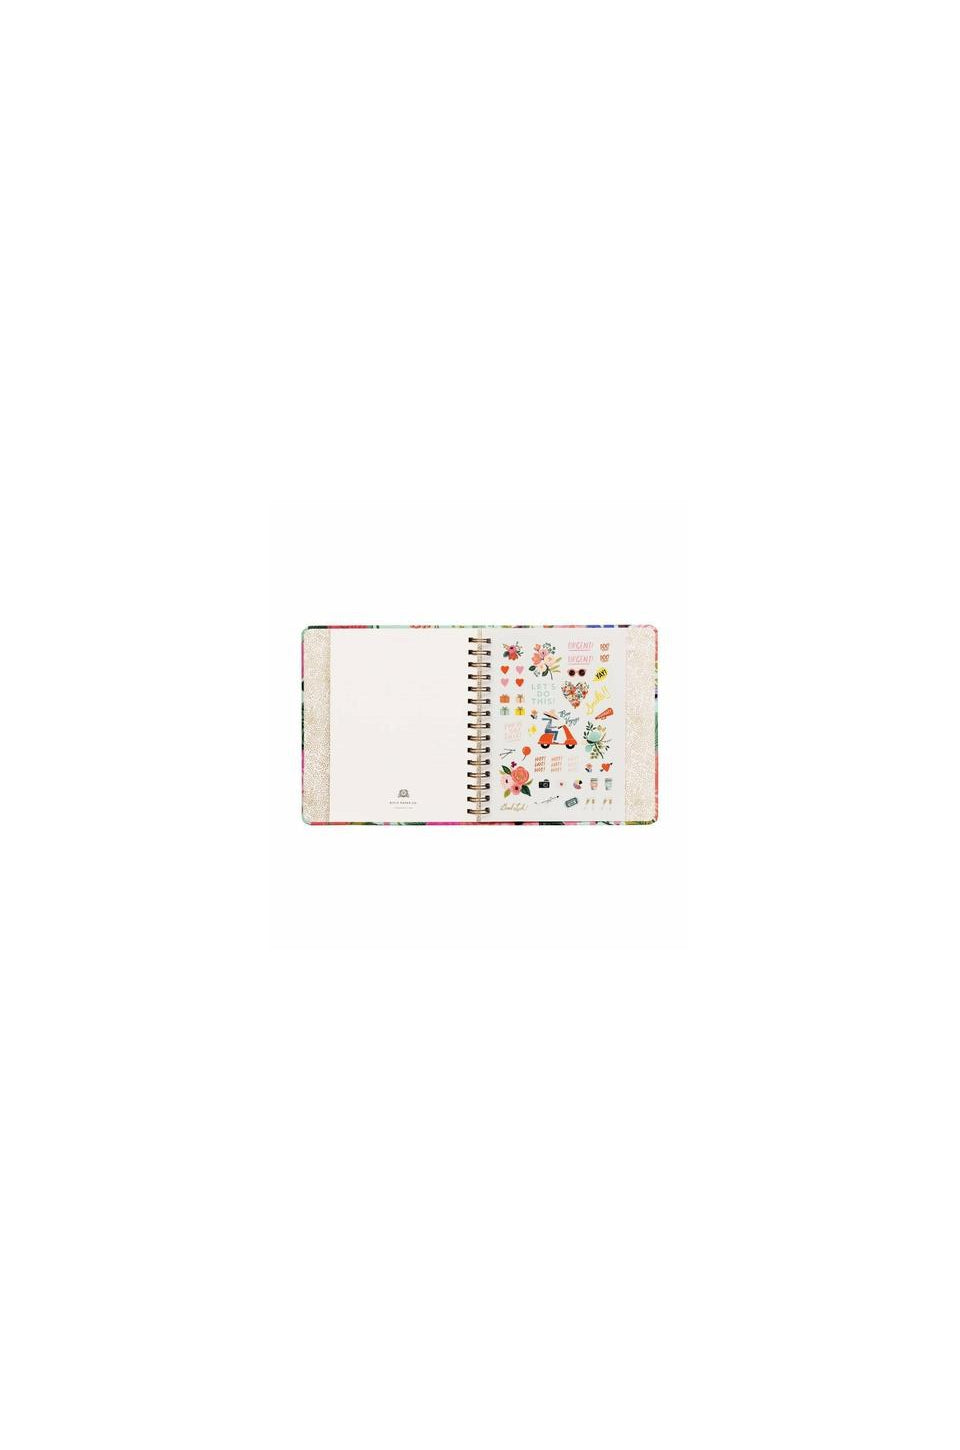 Rifle Paper Co. 2020 Garden Party Classic Covered Spiral 17 Month Planner